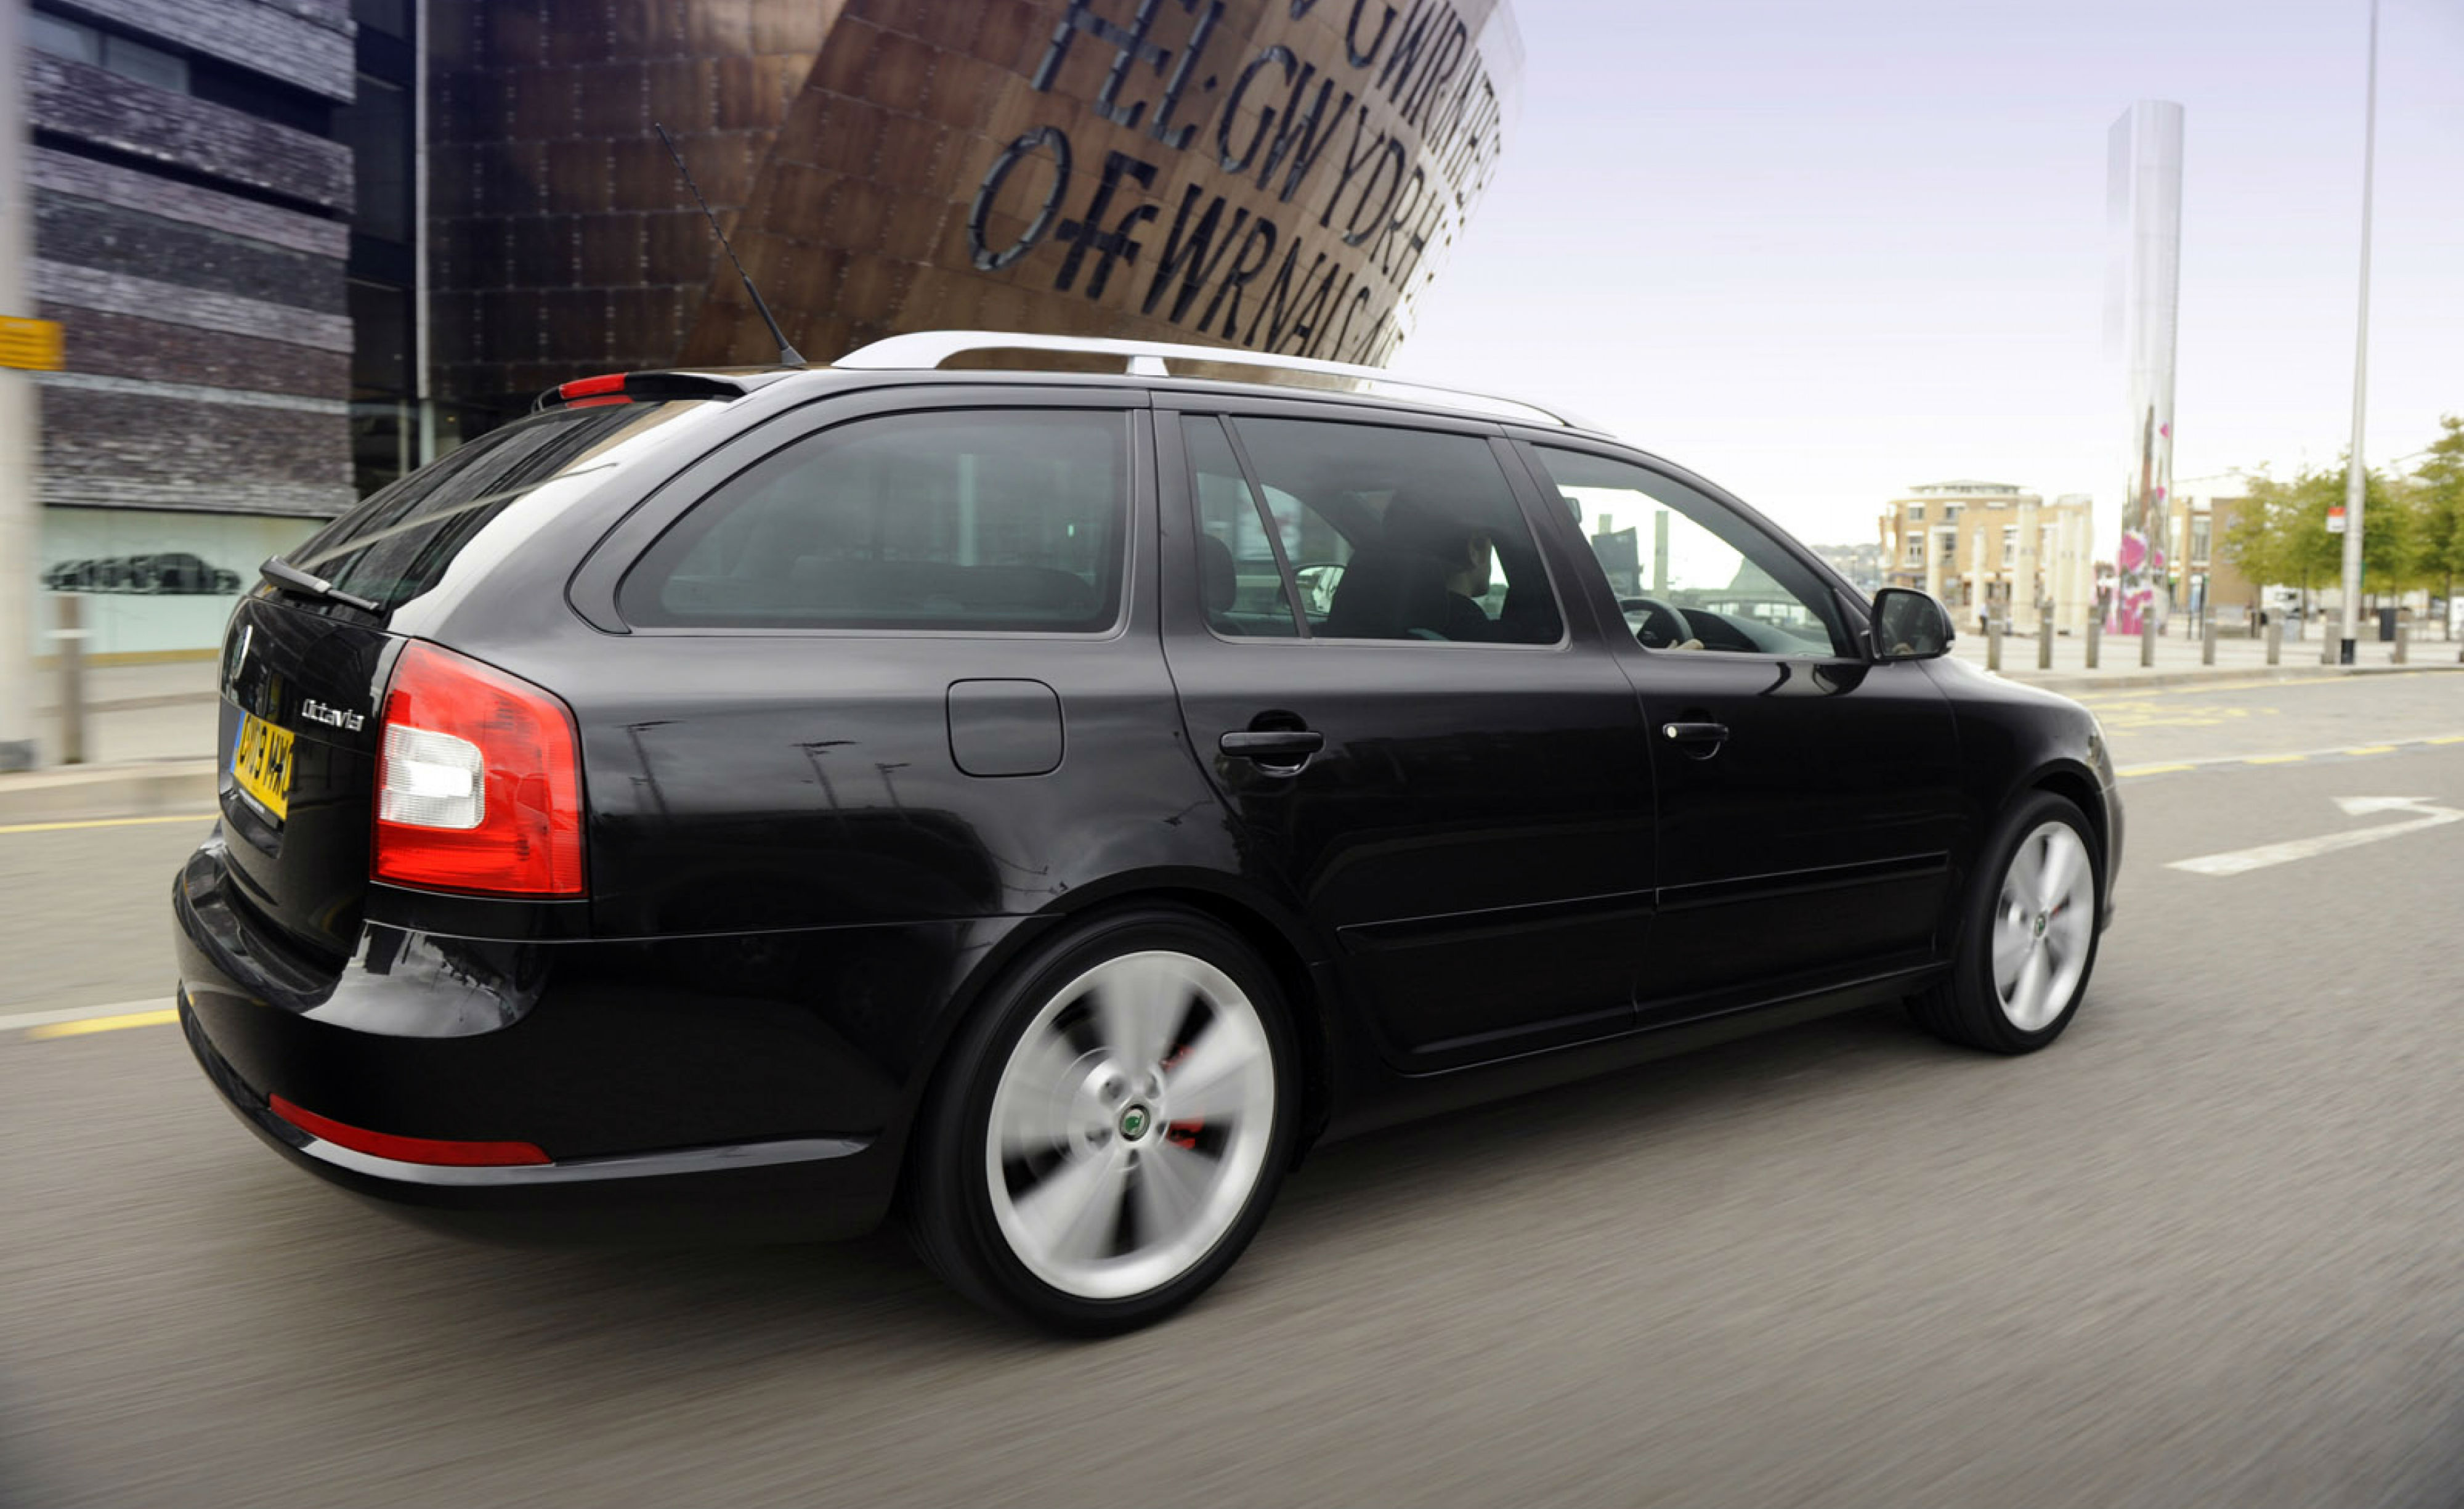 Used Estate Cars for Sale Near Me Lovely Five Fast Affordable Estate Cars for Under £10 000